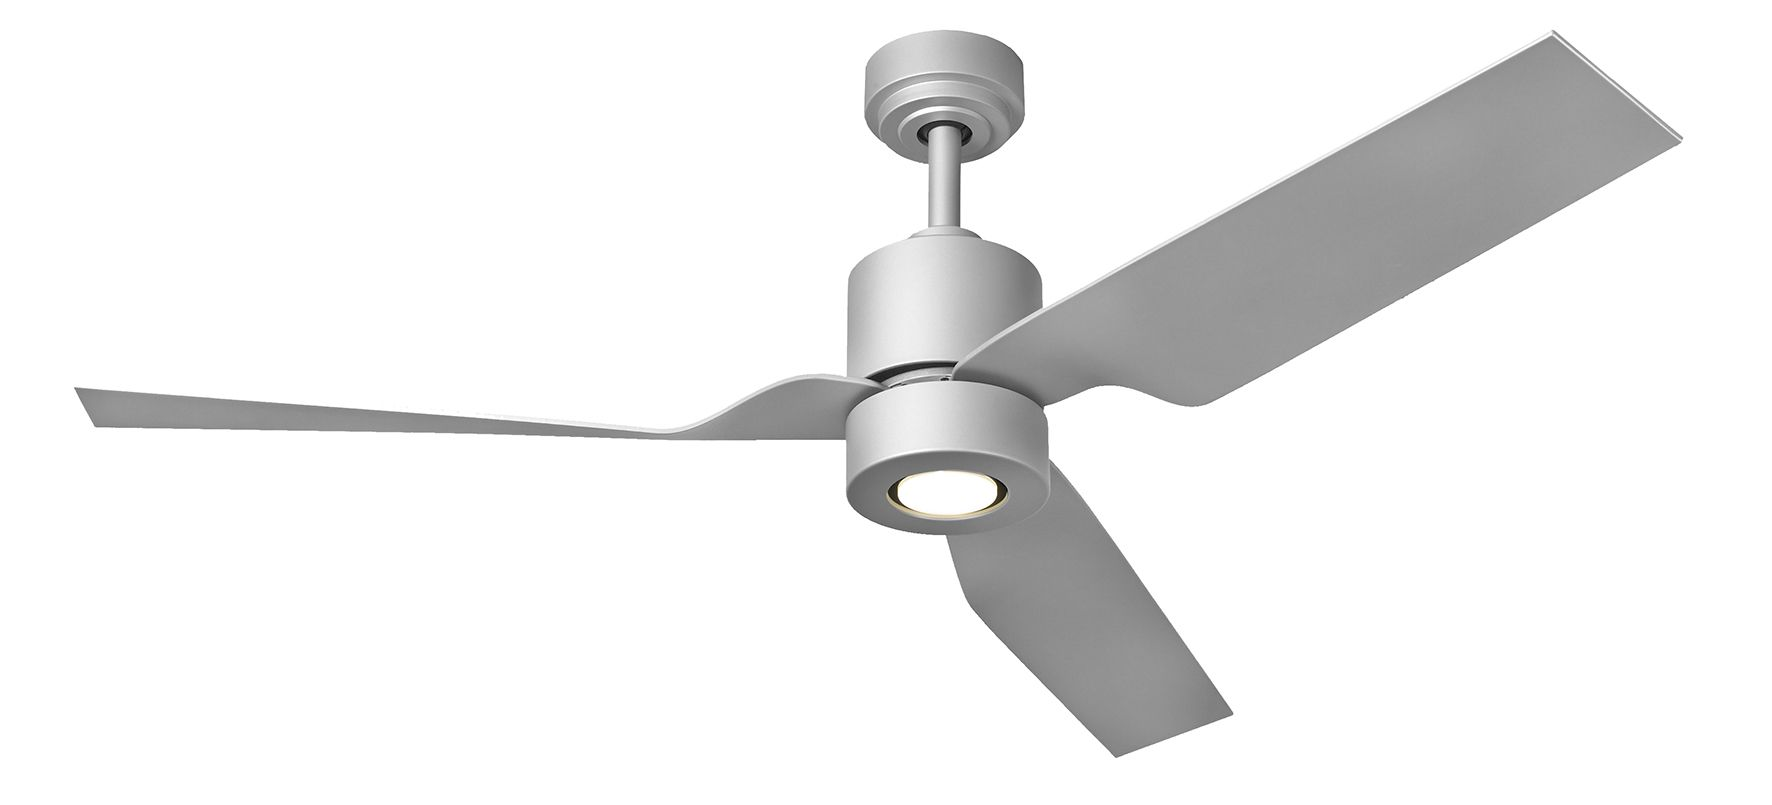 kemper parts ceiling pdf kempercollection manual form fan list collection in silver